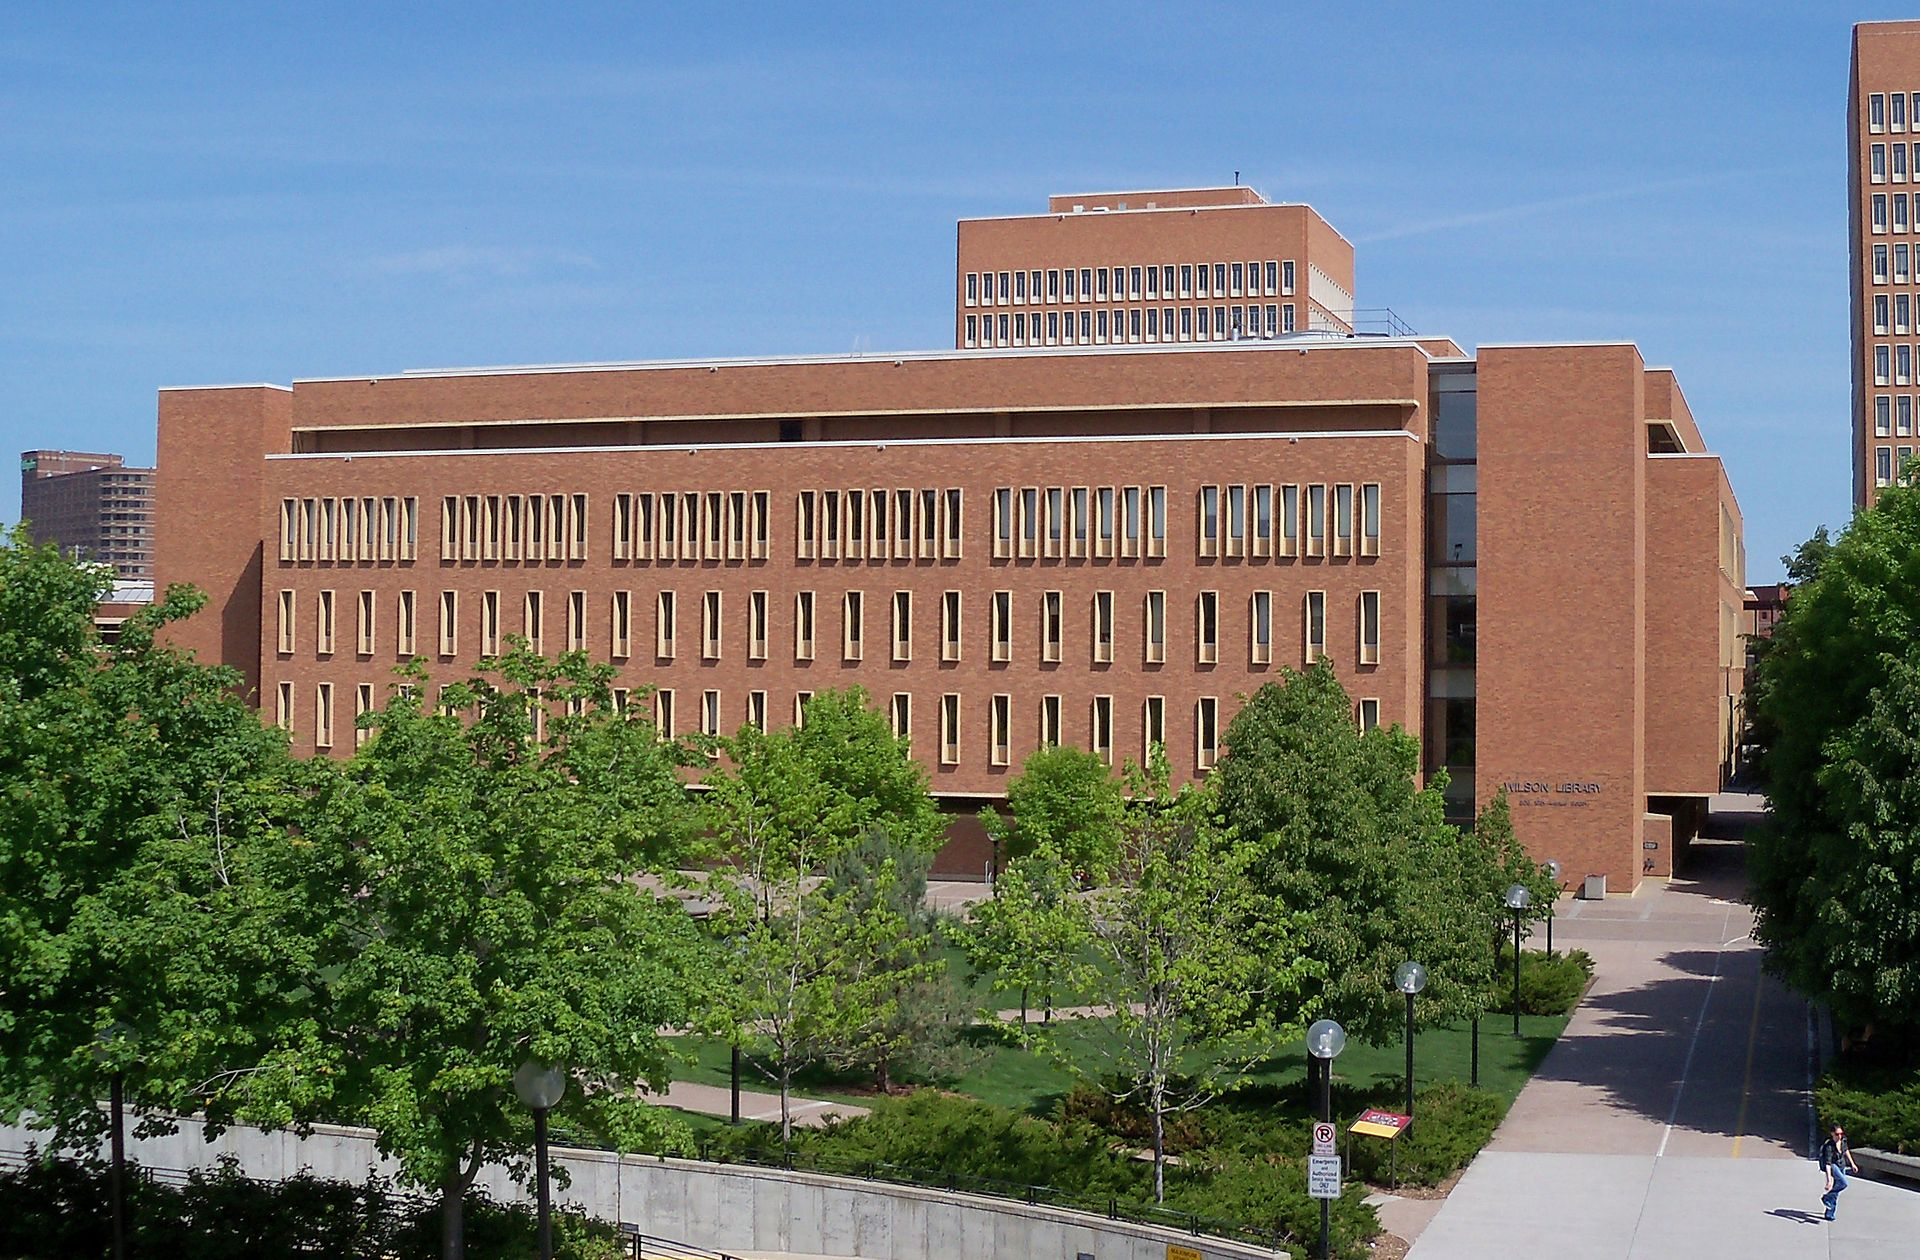 Wilson Library at University of Minnesota